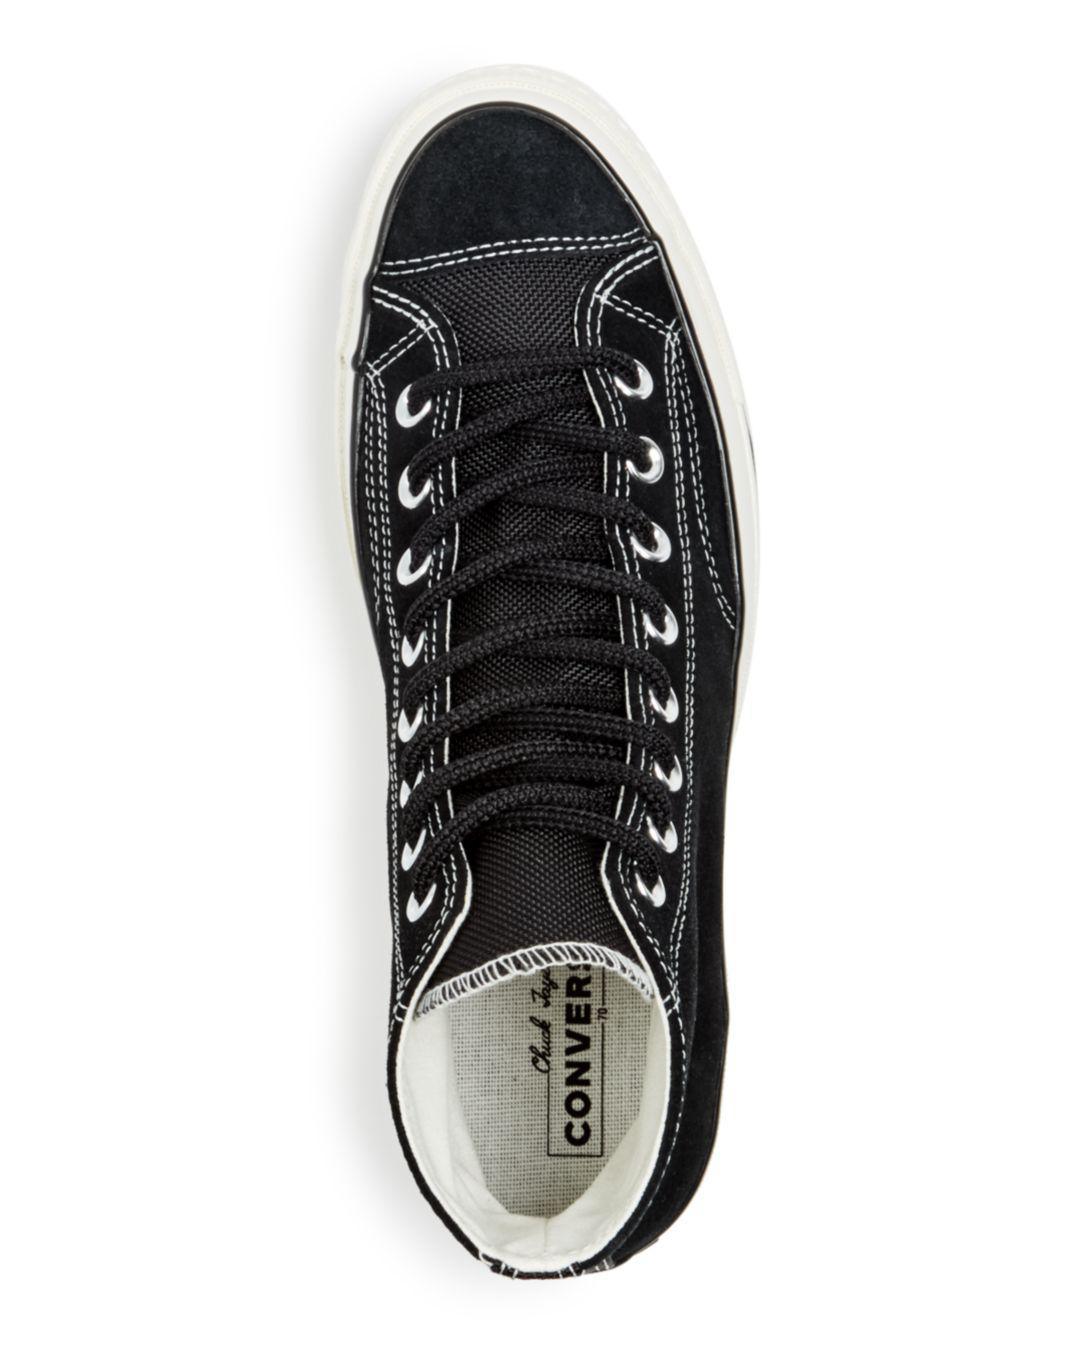 Lyst - Converse Men s Chuck Taylor All Star 70 Suede High-top Sneakers in  Black for Men 44e635653